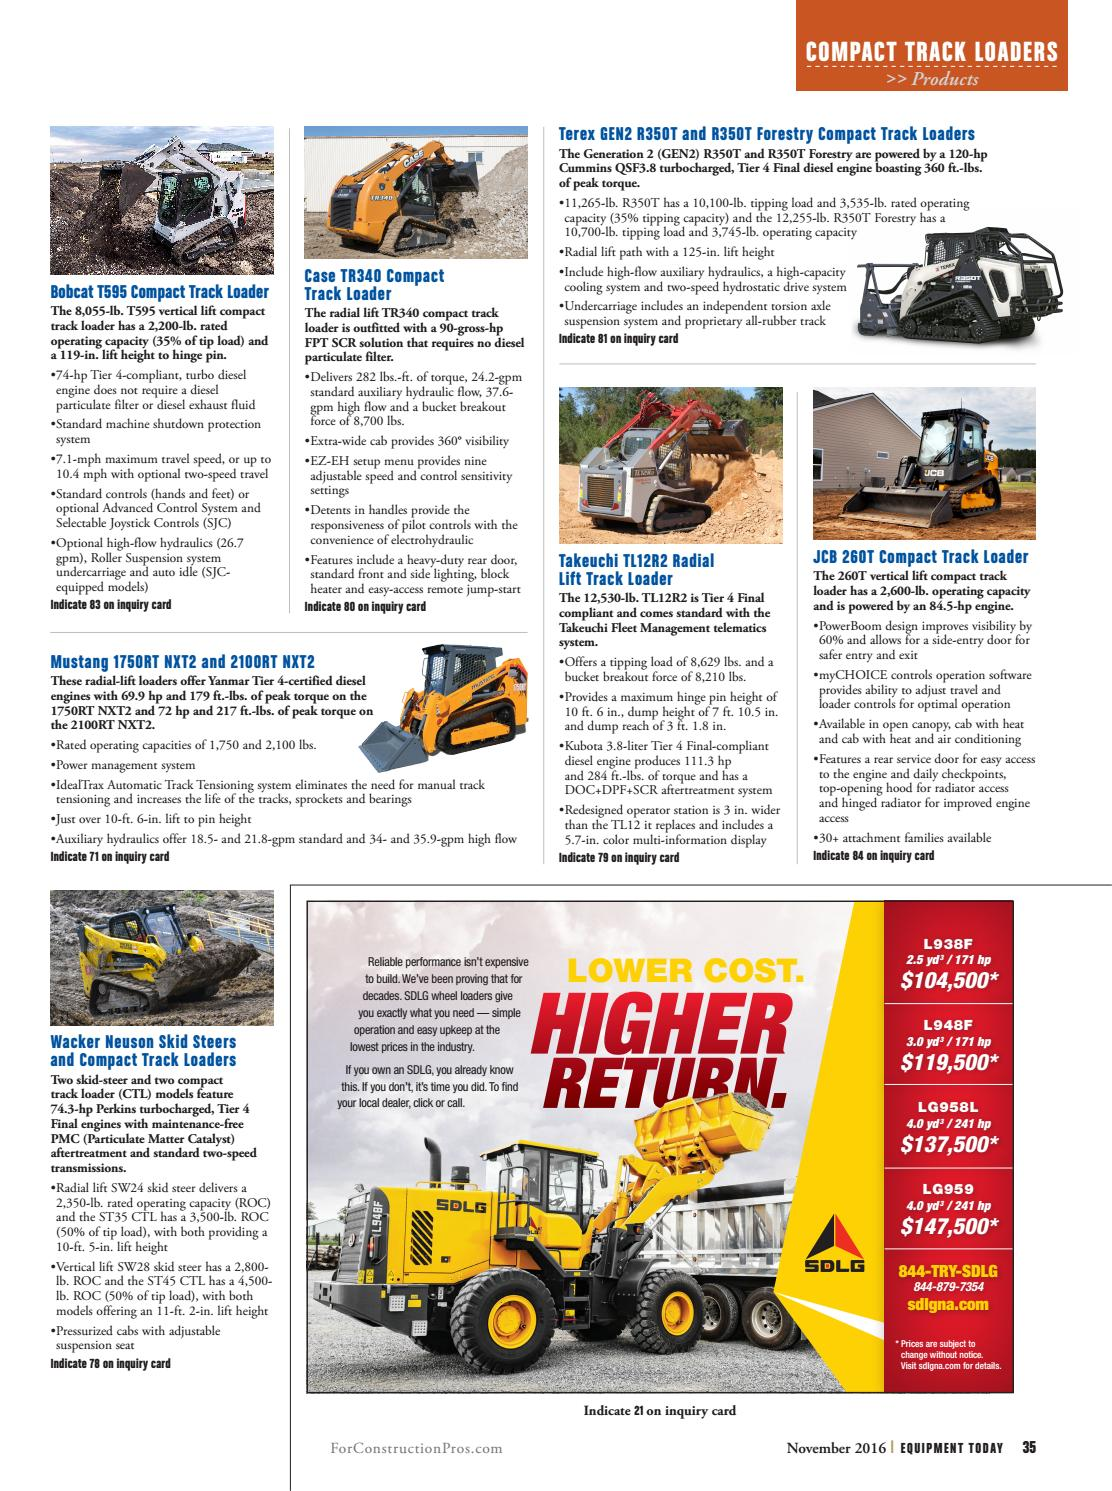 Equipment Today November 2016 by ForConstructionPros com - issuu